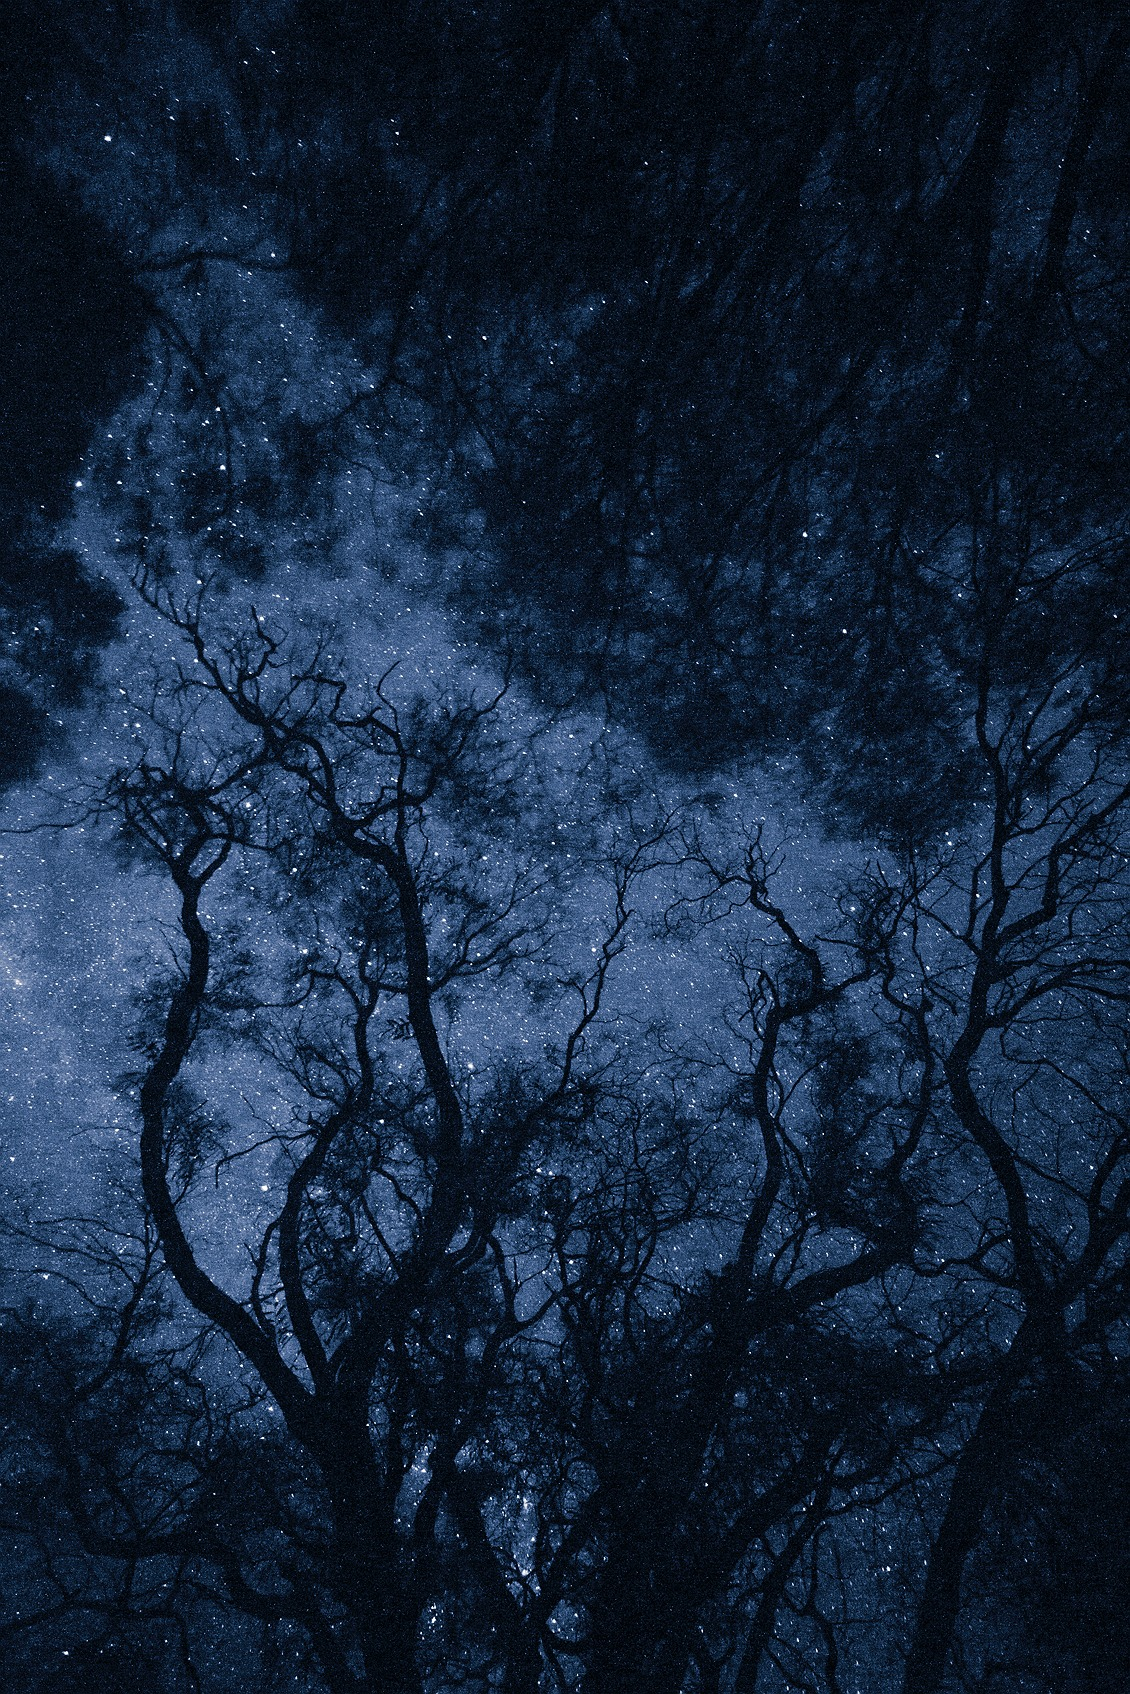 Night Sky Rob Dose Landscape And Portrait Photography